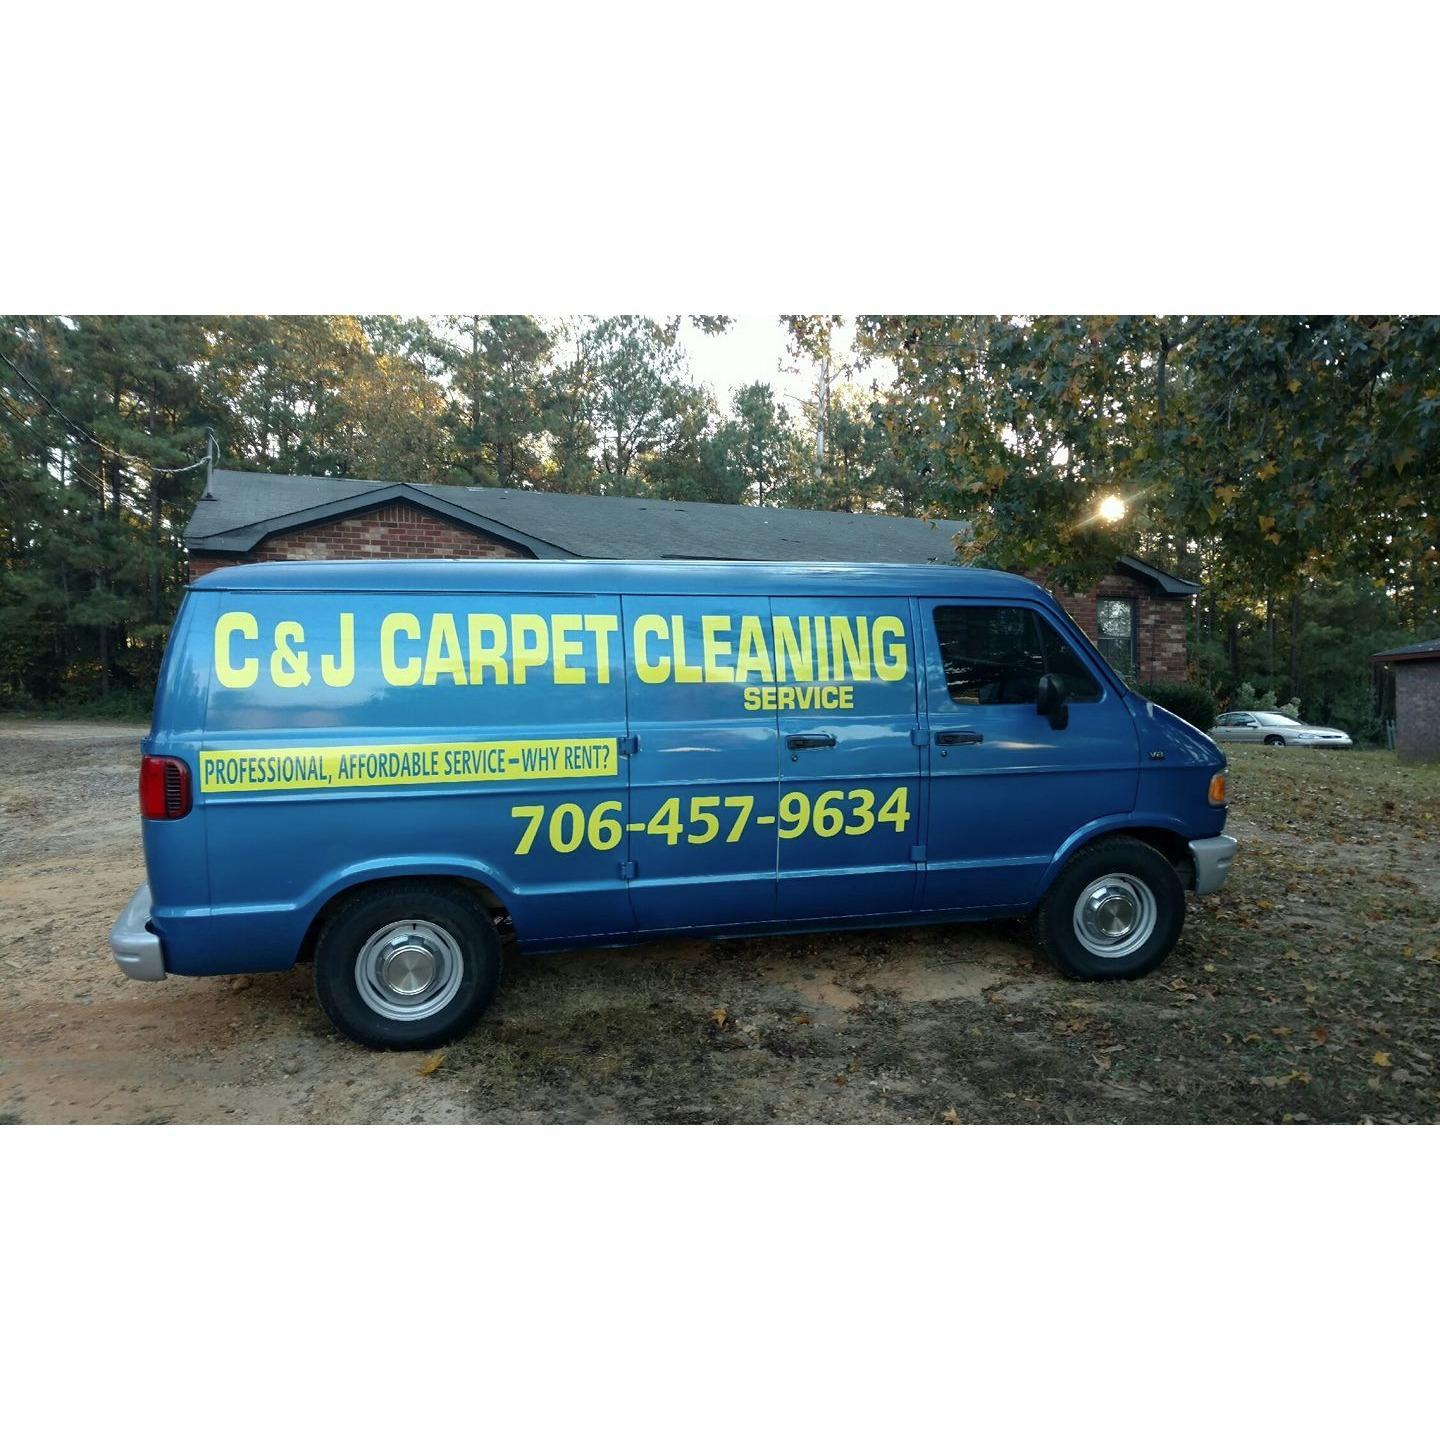 C And J Carpet Cleaning Service Upholstery Cleaning Service